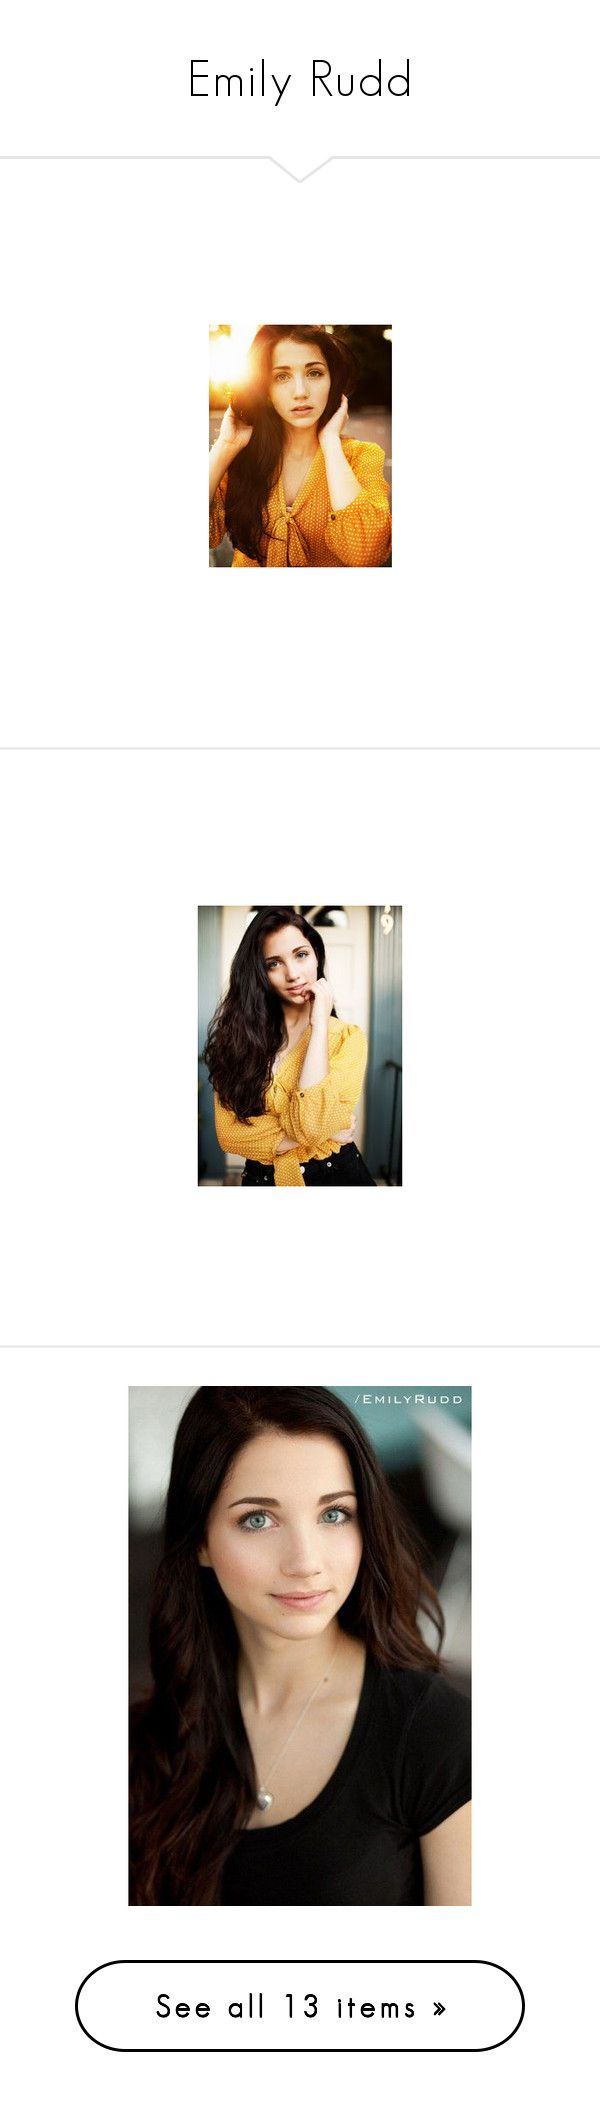 """""""Emily Rudd"""" by niisabel ❤ liked on Polyvore featuring Girls, emilyrudd, emily rudd, pictures, people, emily, models, girls, faceclaims and accessories"""